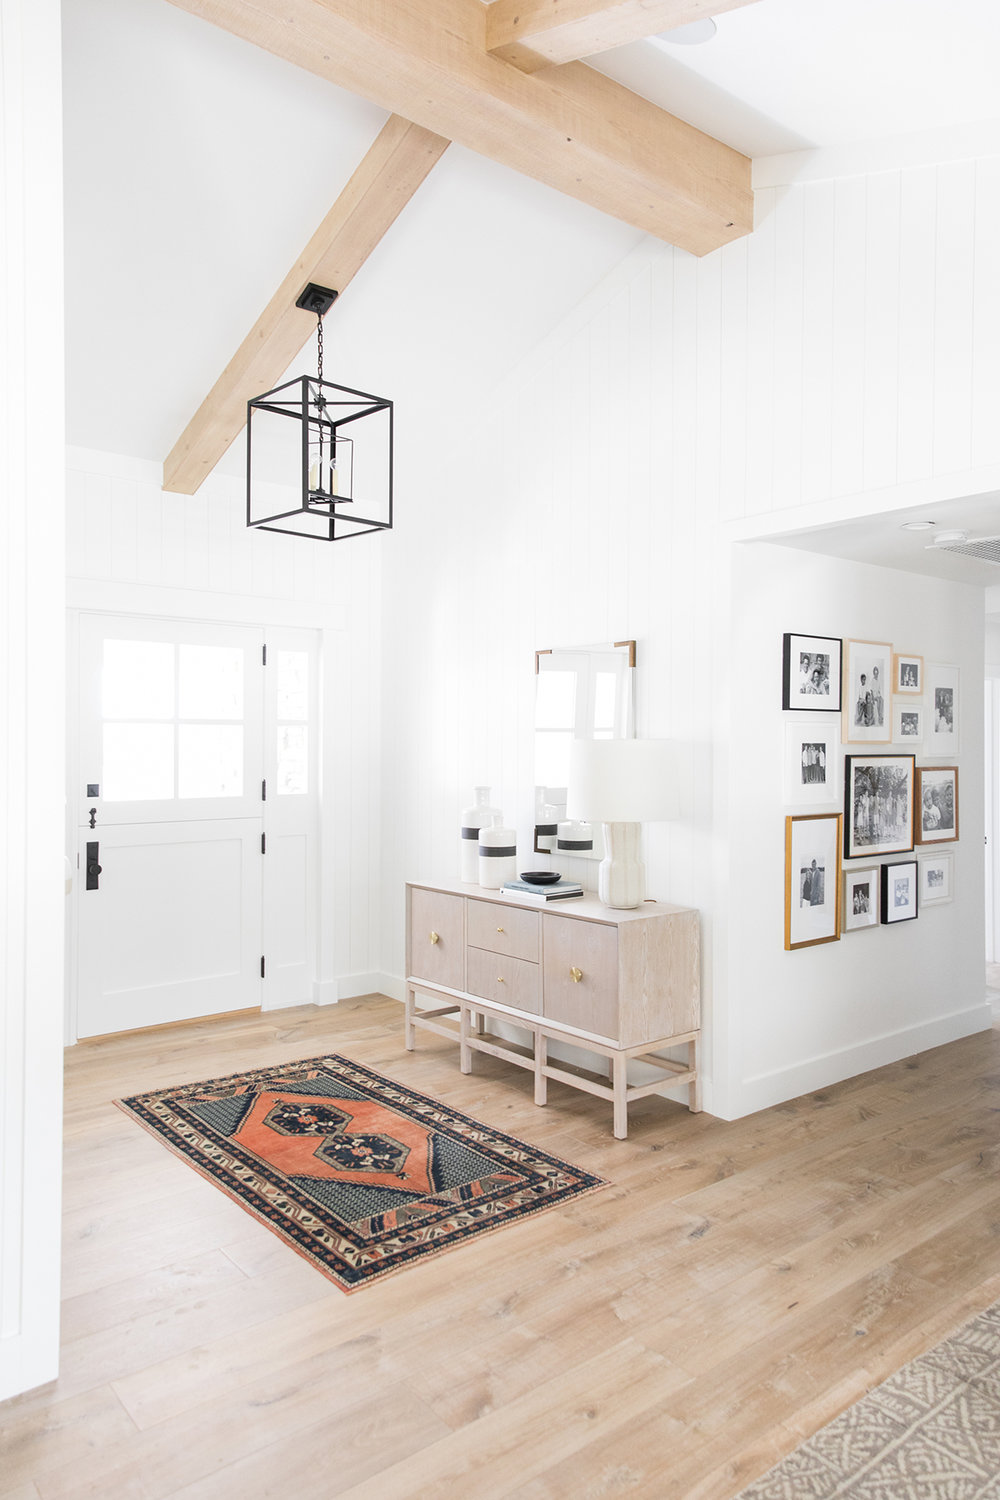 Vintage+Rug+_+Natural+Beams+_+Console+Styling.jpg